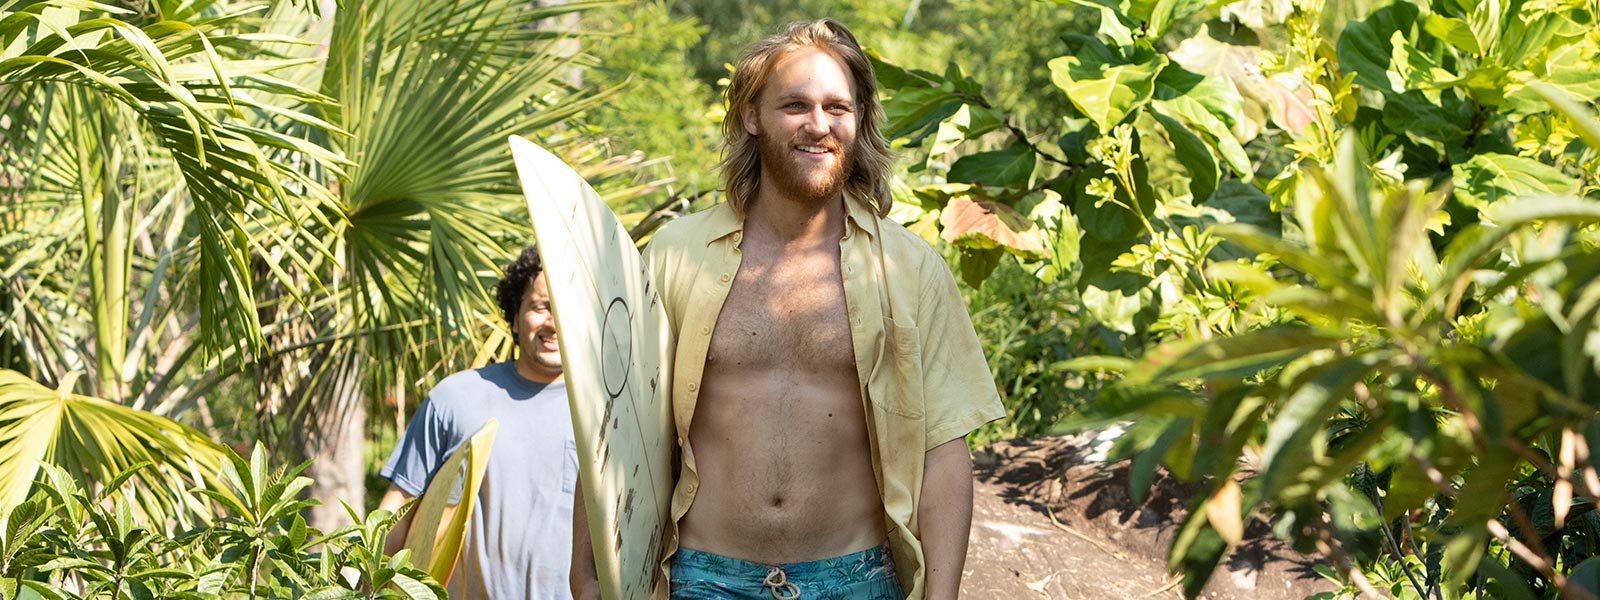 the-lodge-102-dud-wyatt-russell-800×600